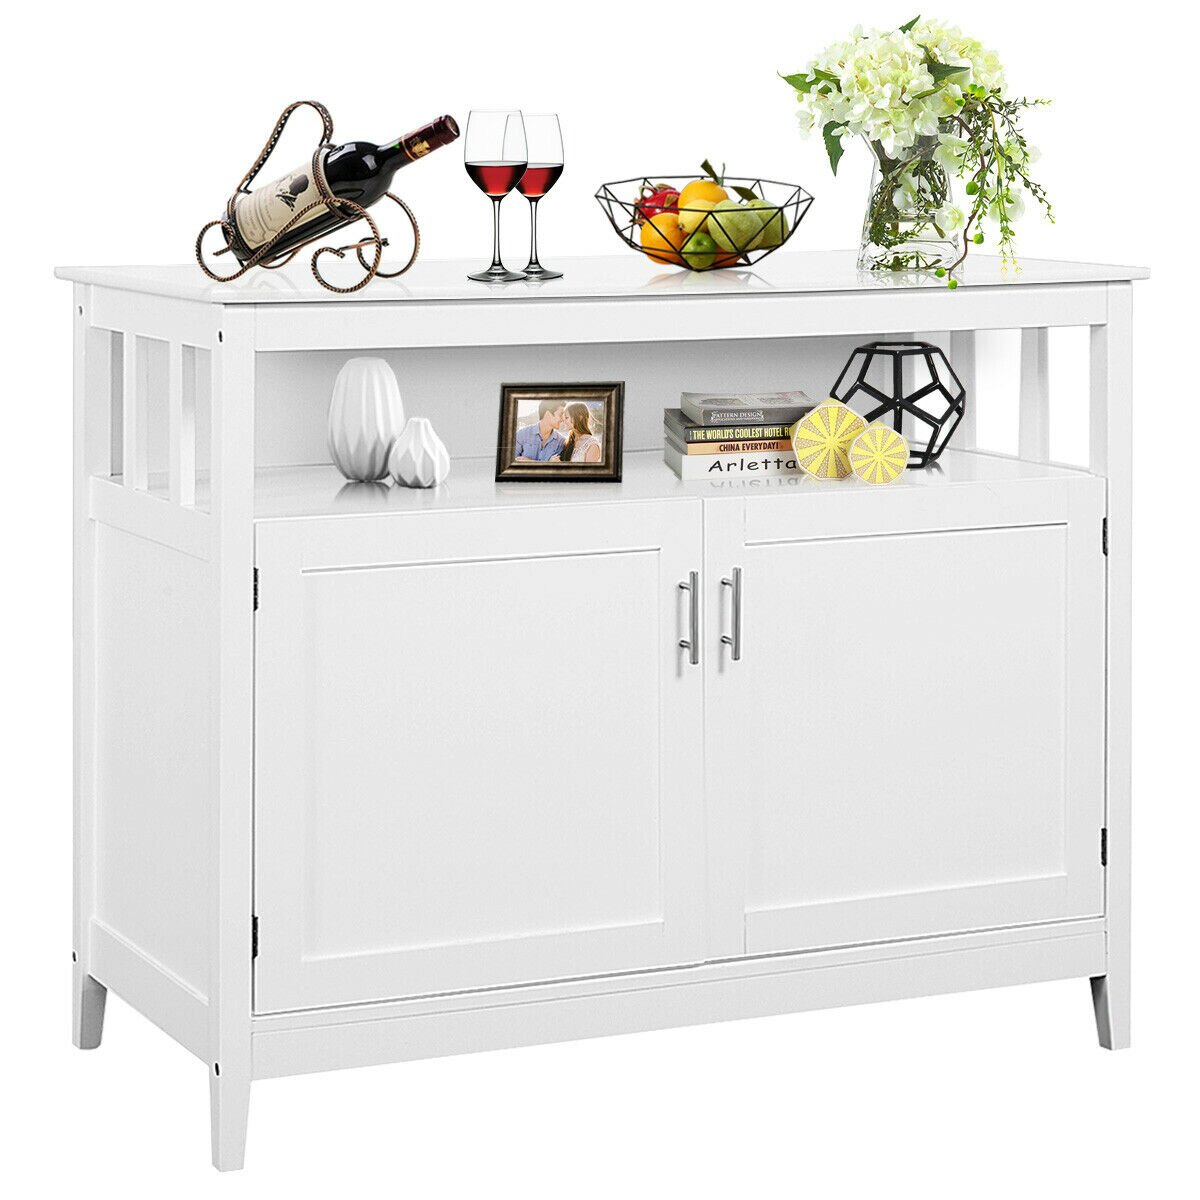 Costway: Costway Modern Kitchen Storage Cabinet Buffet Server Table Sideboard Dining Wood White | Rakuten With Regard To Contemporary Espresso Dining Buffets (View 18 of 30)